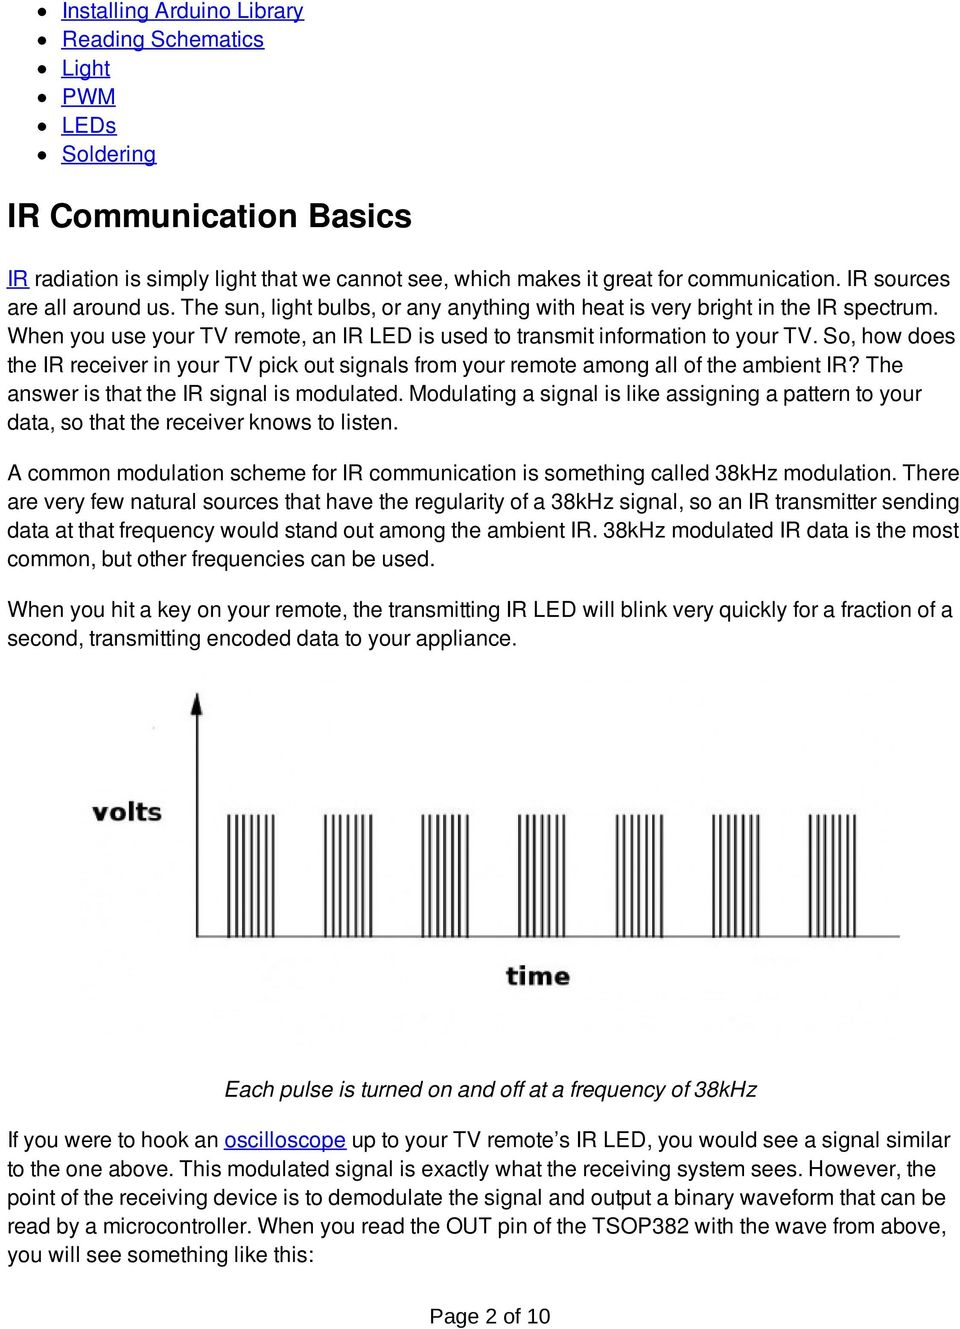 Ir Communication A Learnsparkfuncom Tutorial Pdf Dimmers For Led Circuits Diagram Pwm 555 Dimmer So How Does The Receiver In Your Tv Pick Out Signals From Remote